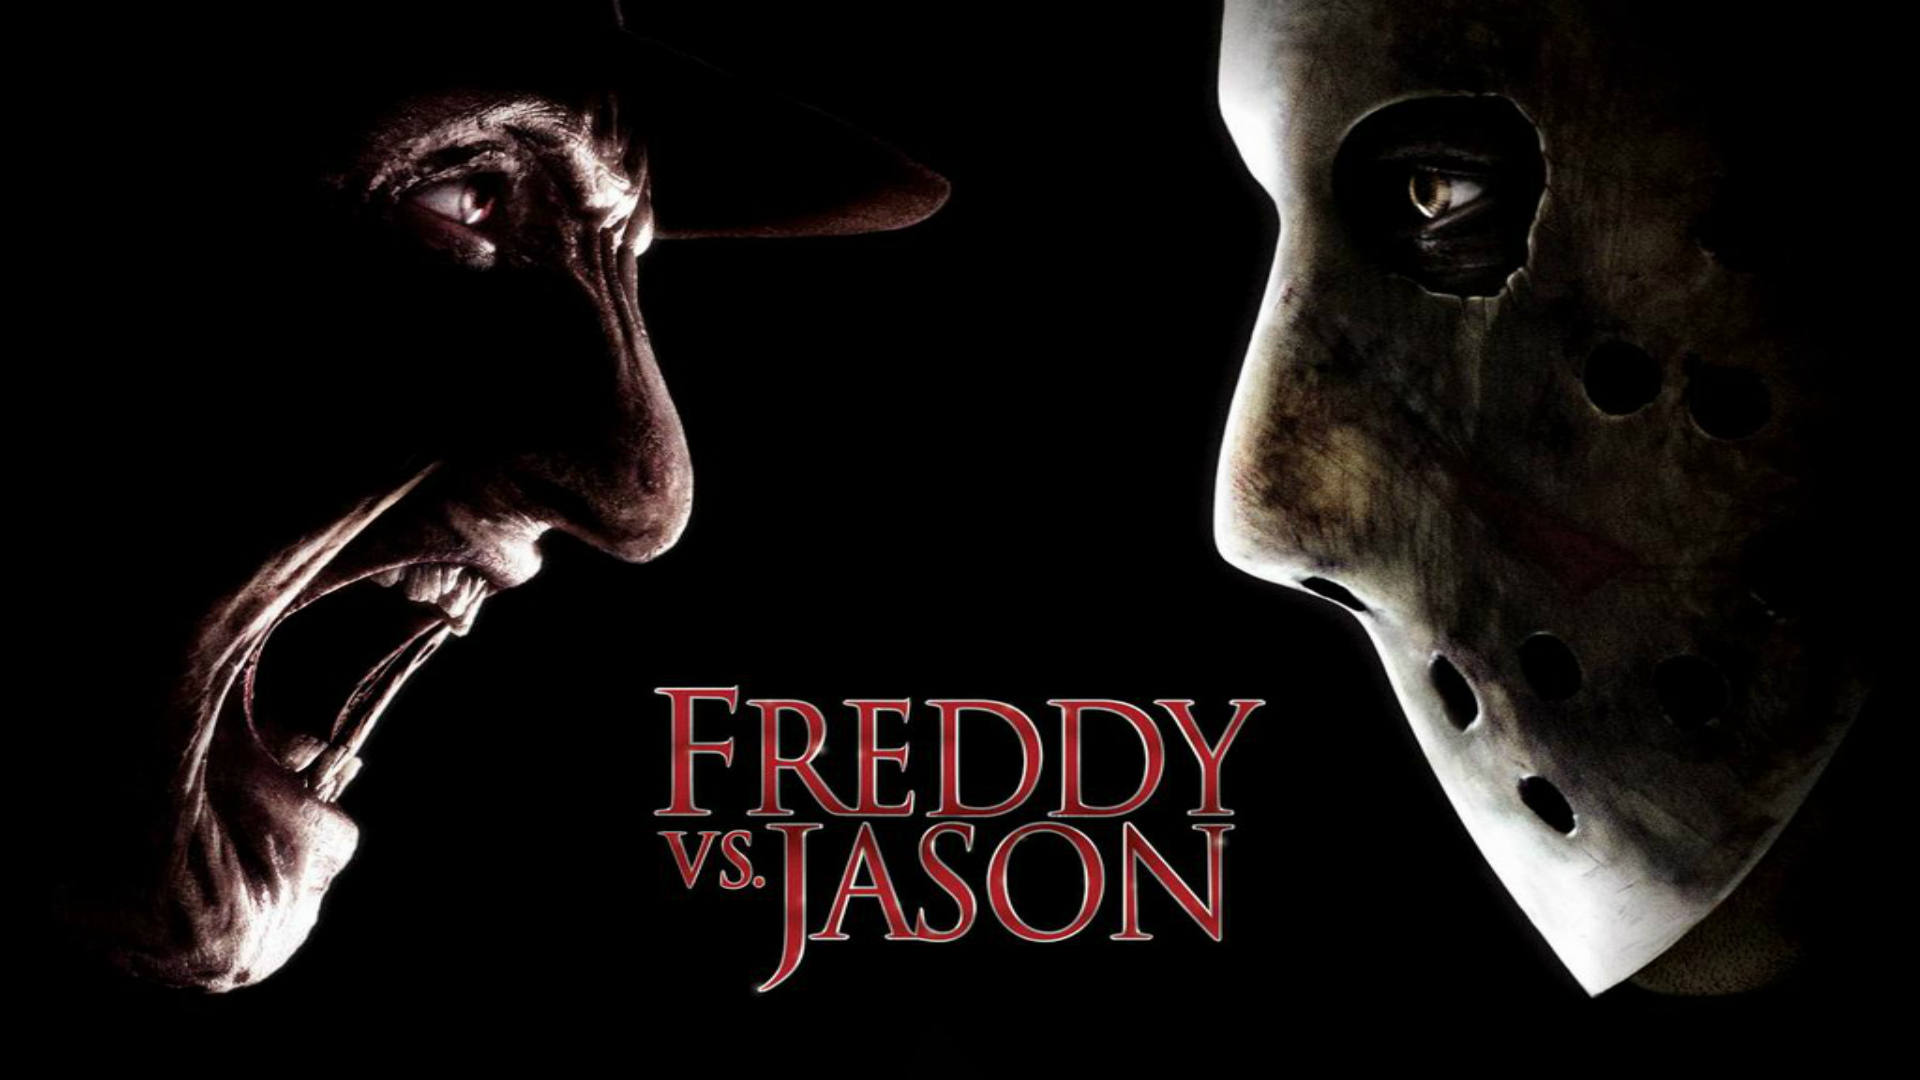 heroes and fantasies monday night series freddy vs jason